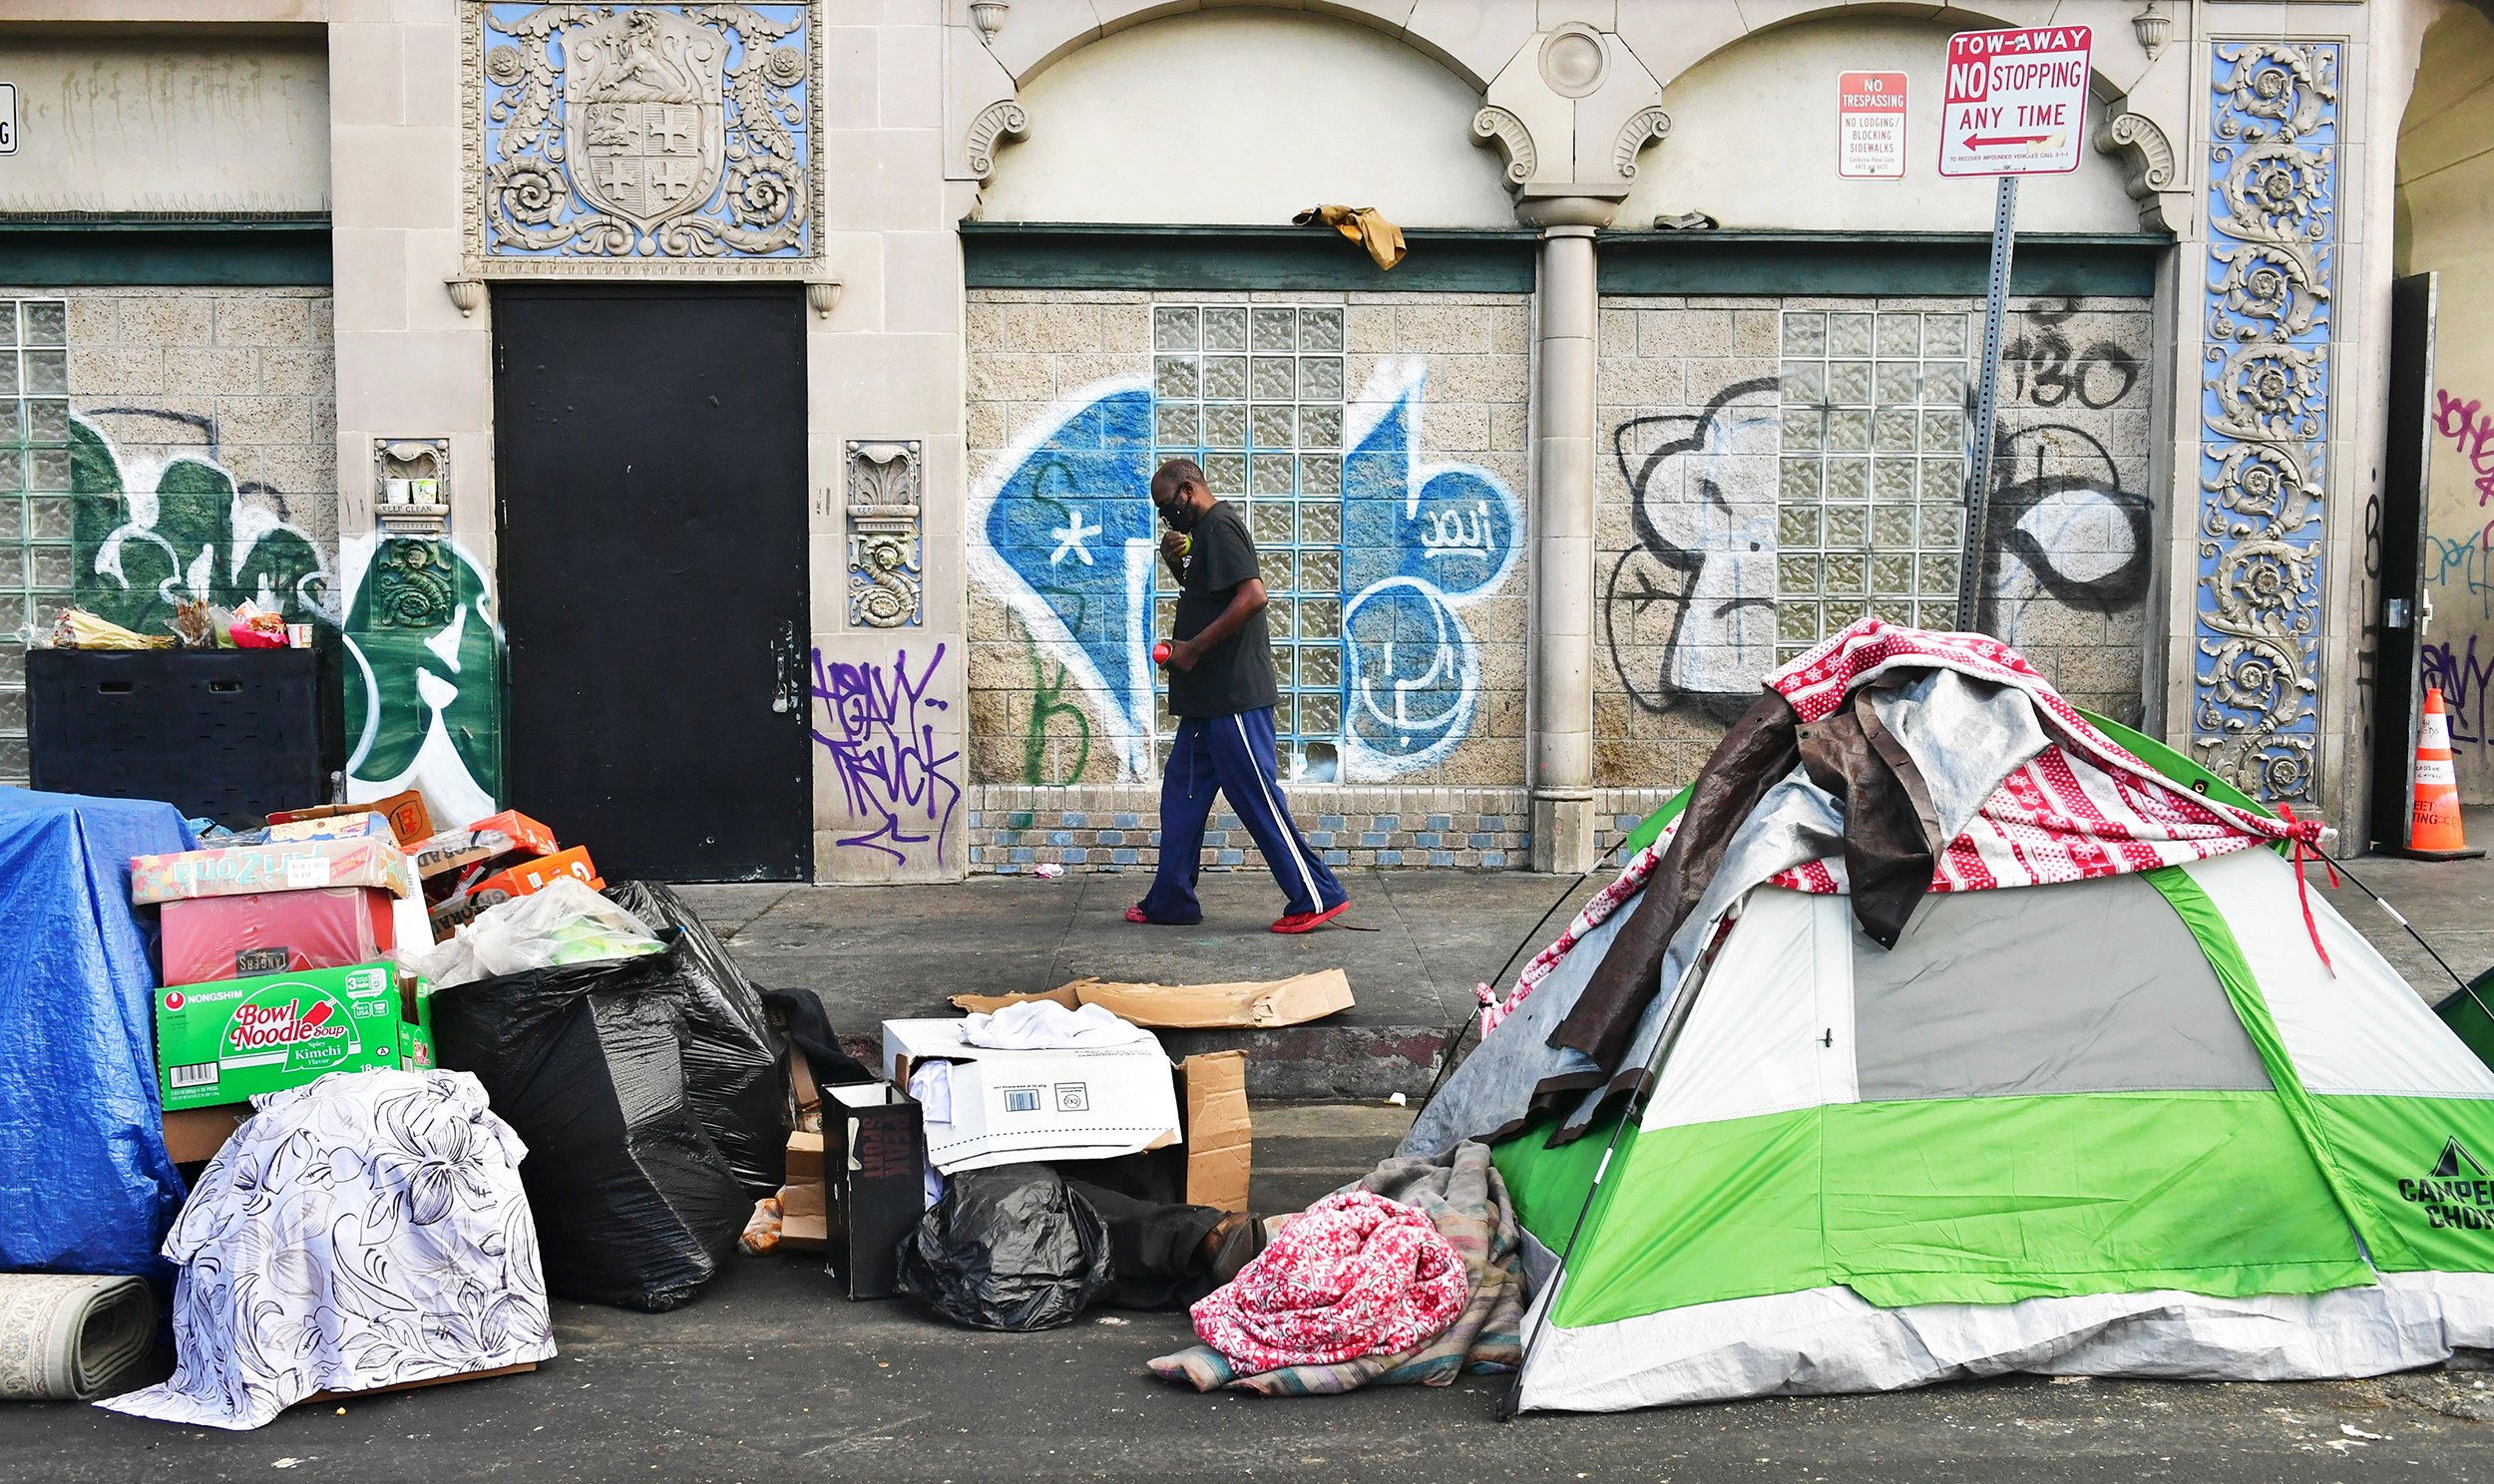 Appeals court overturns order to house L.A. skid row homeless